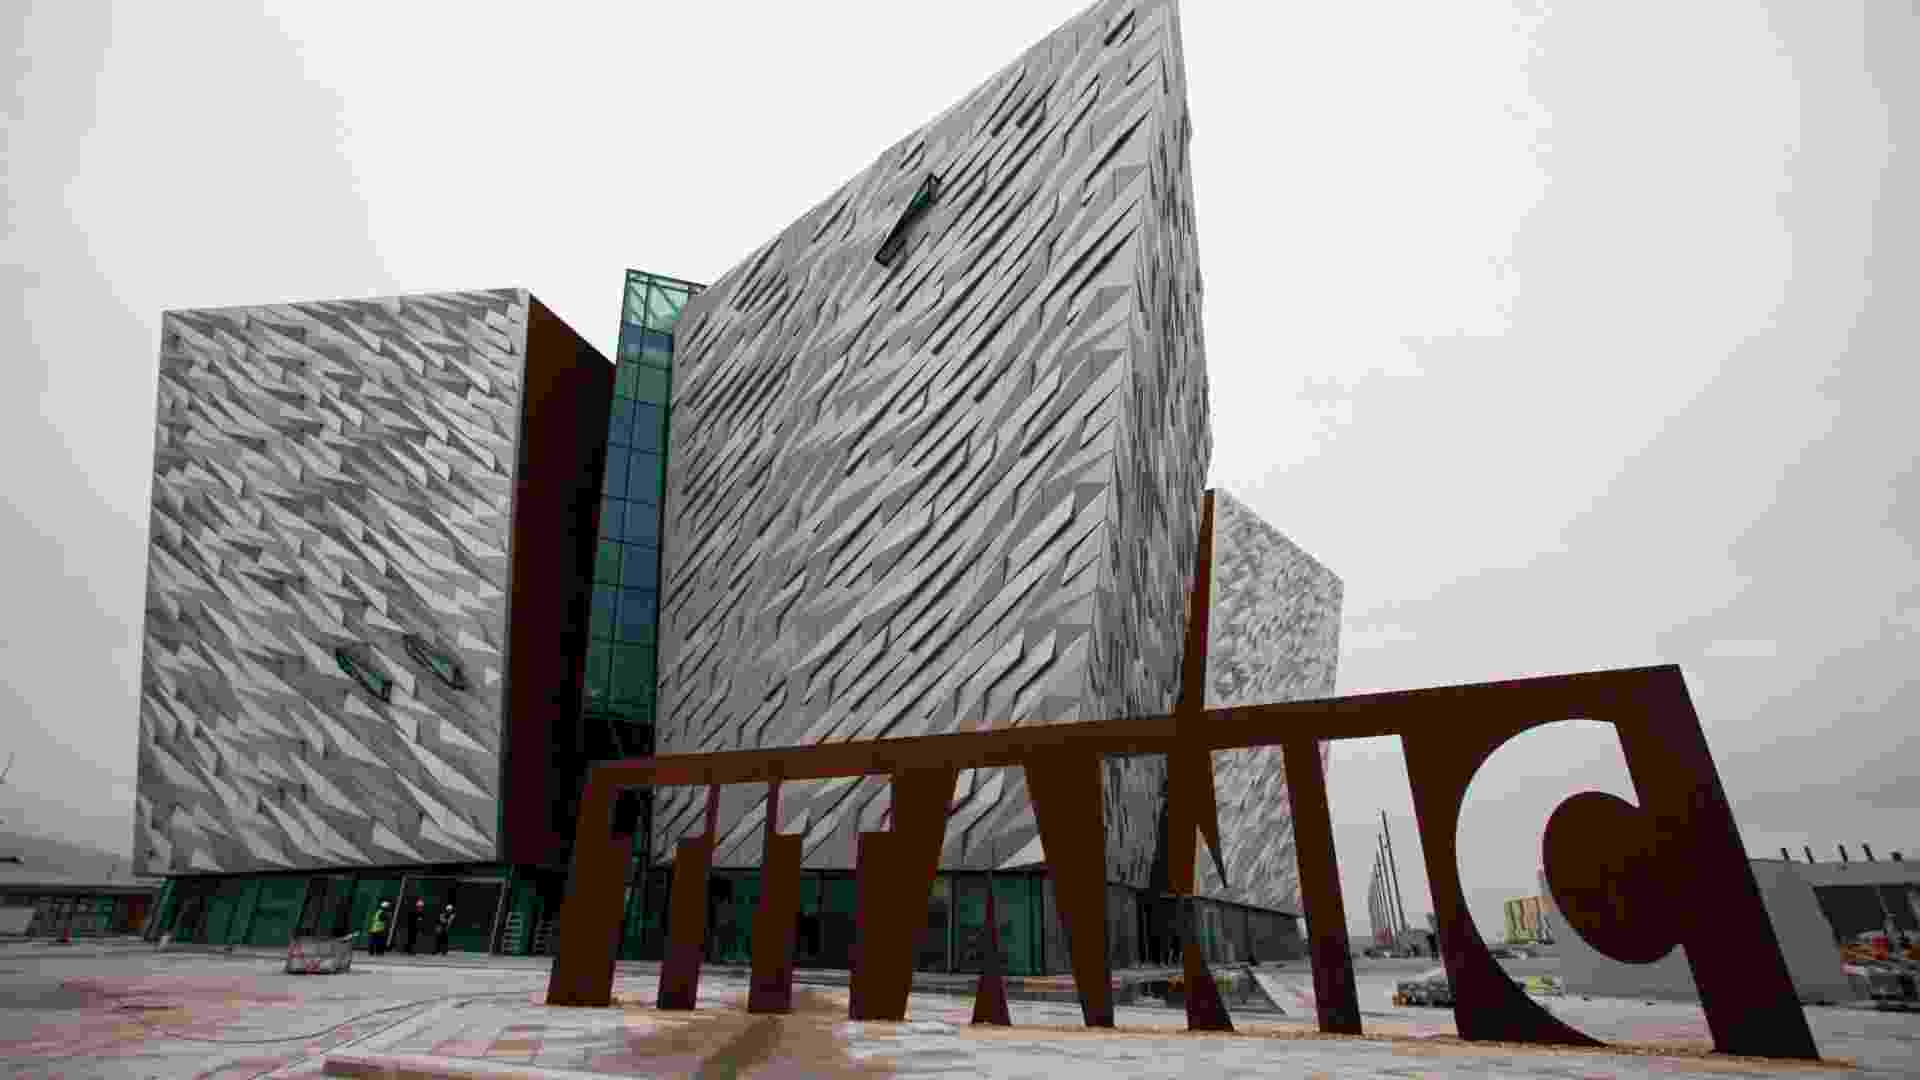 Fachada do Titanic Belfast, centro de Belfast, Irlanda do Norte, dedicado à embarcação que naufragou em 1912 (13/3/12) - Peter Muhly/AFP Photo